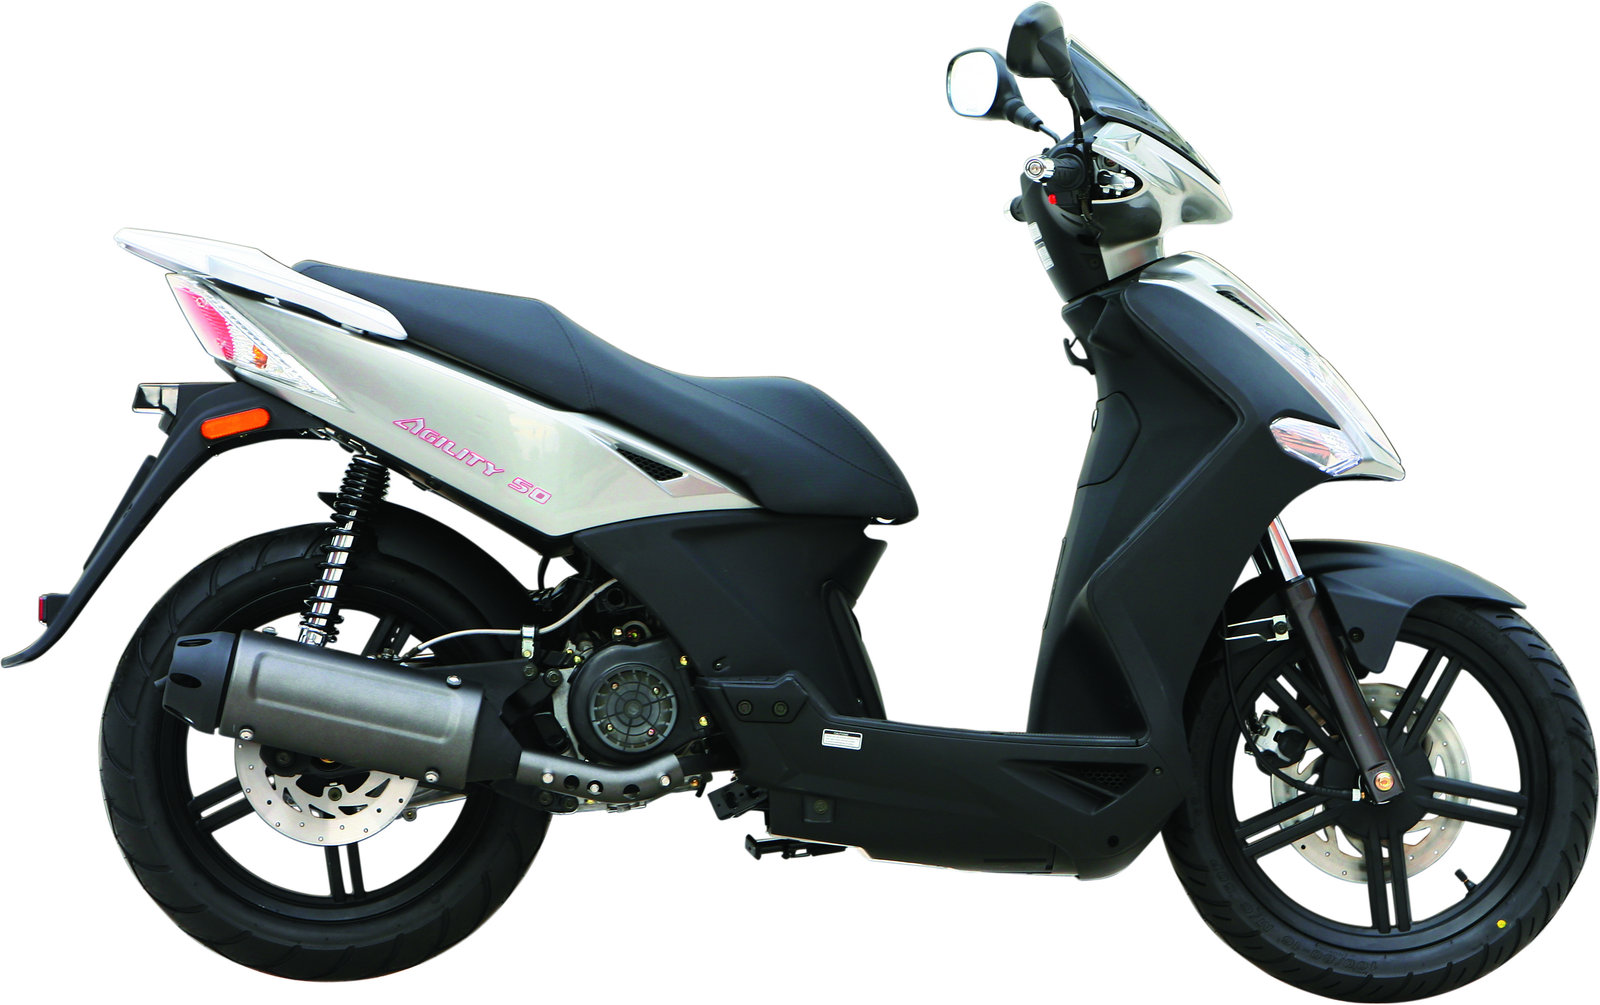 Kymco Agility City 125 images #101820